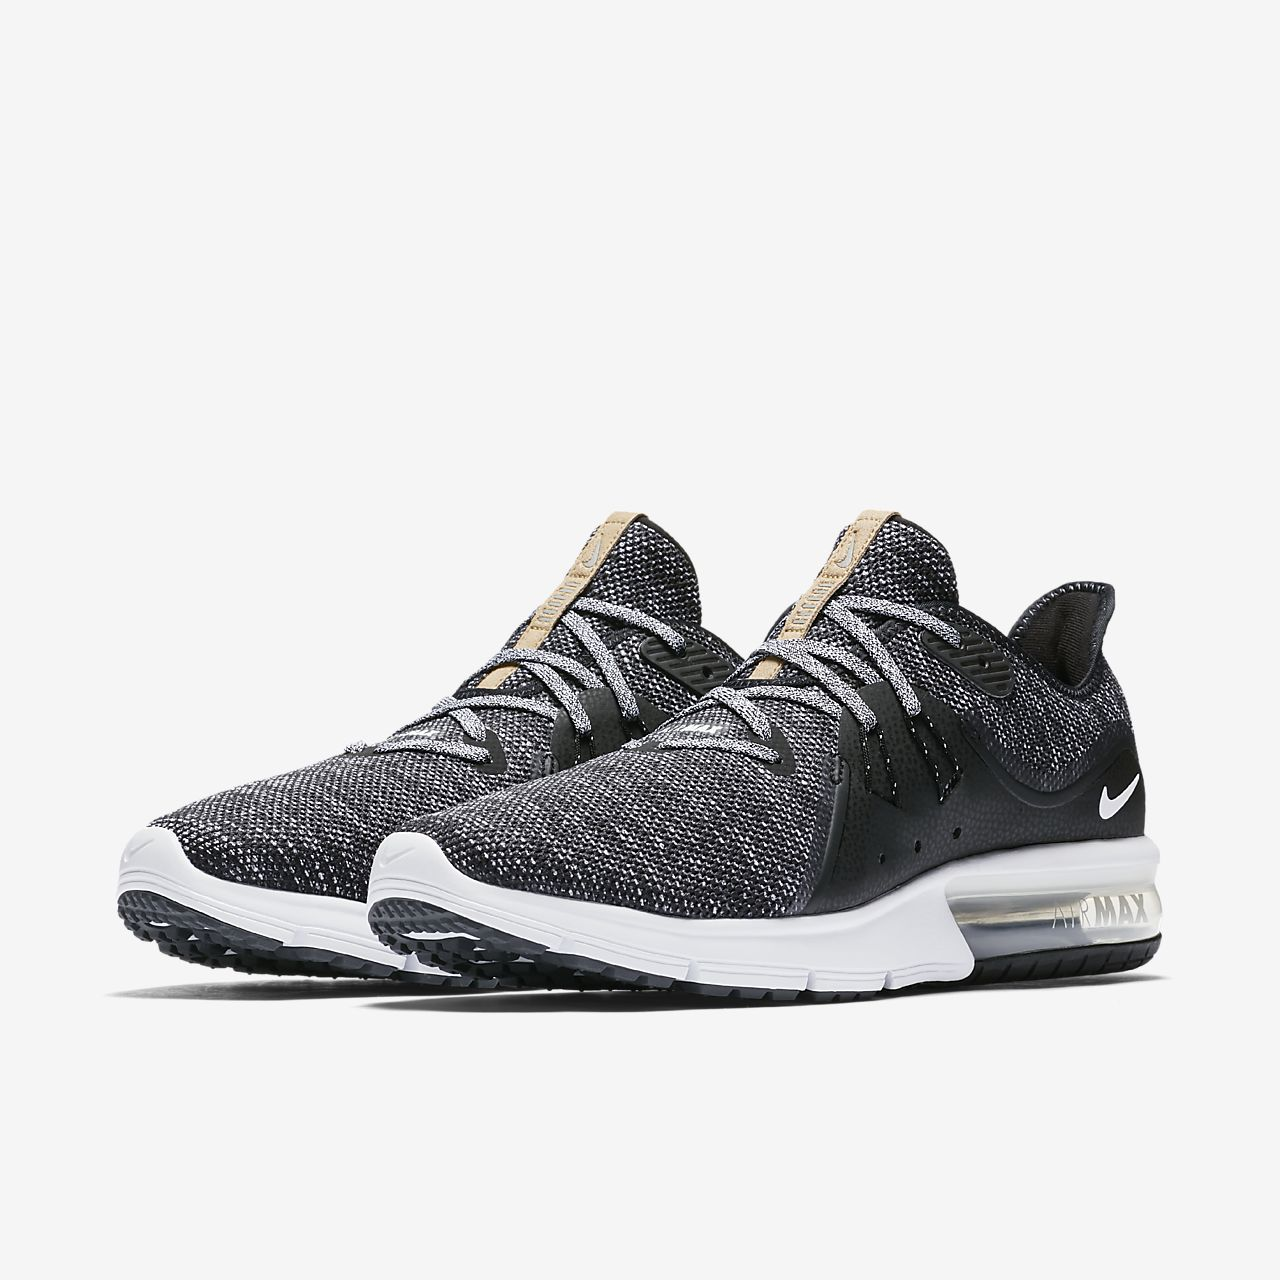 ... Nike Air Max Sequent 3 Men's Running Shoe